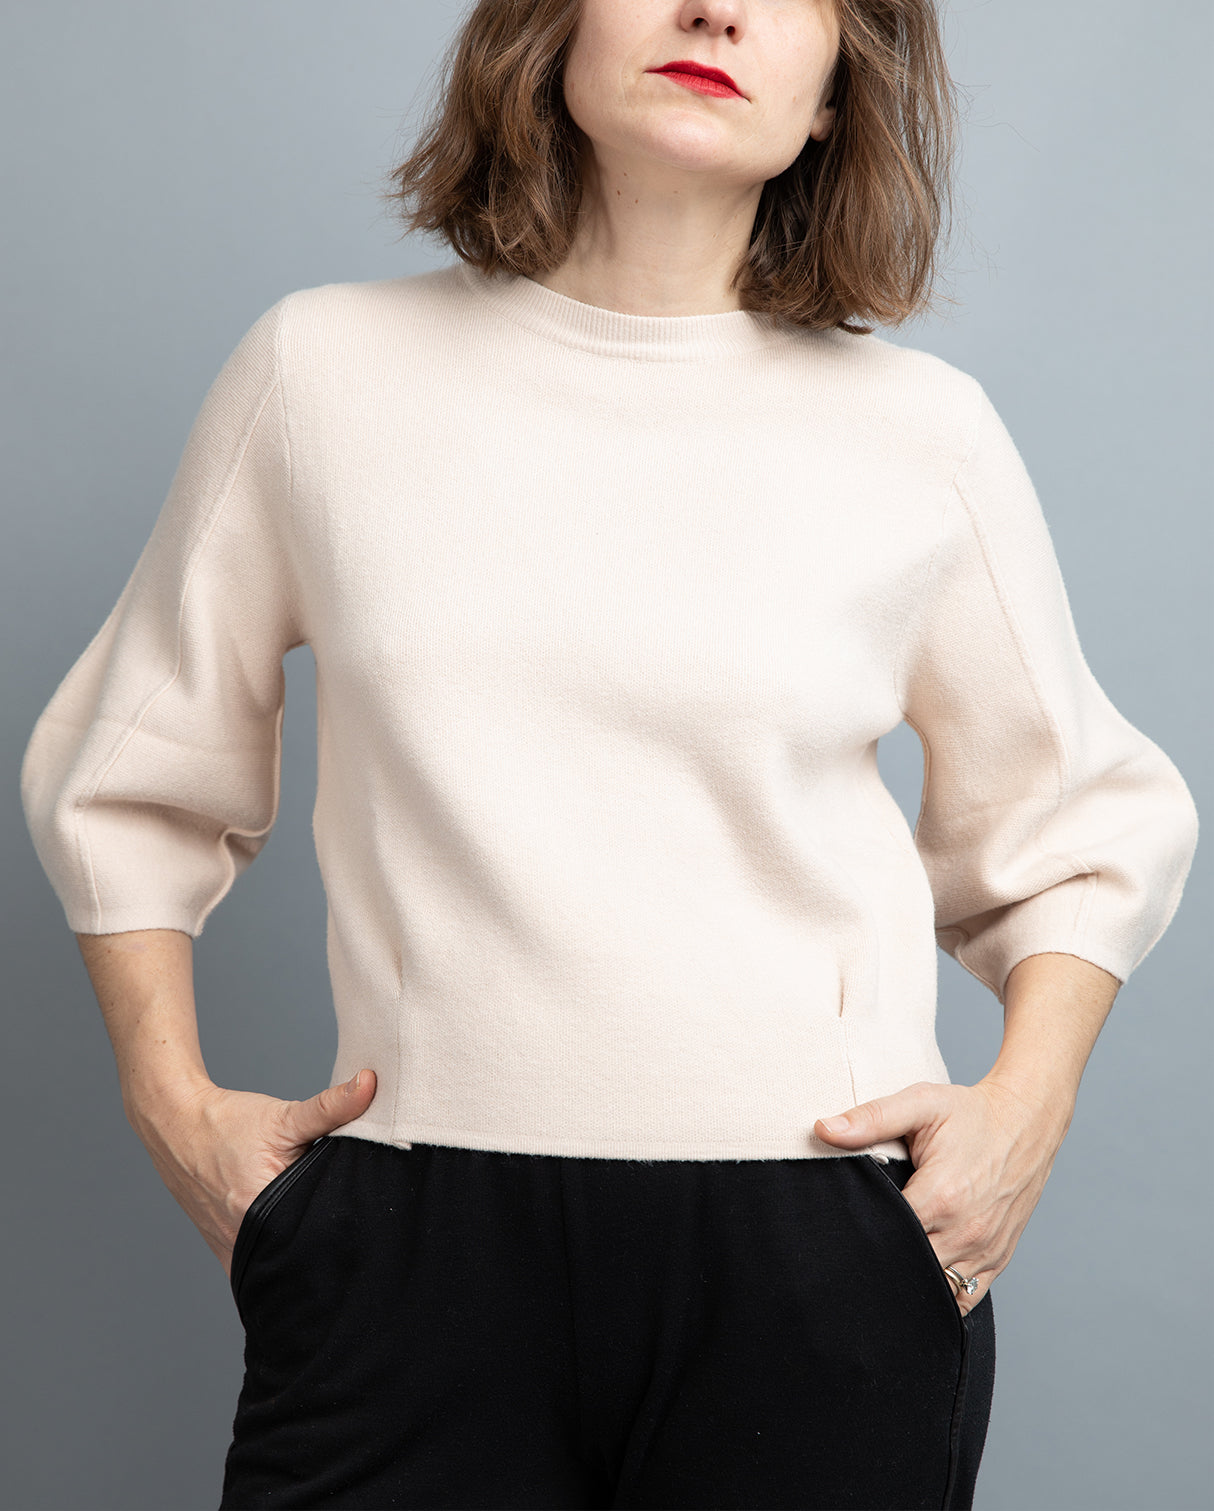 Office Chic Sweater